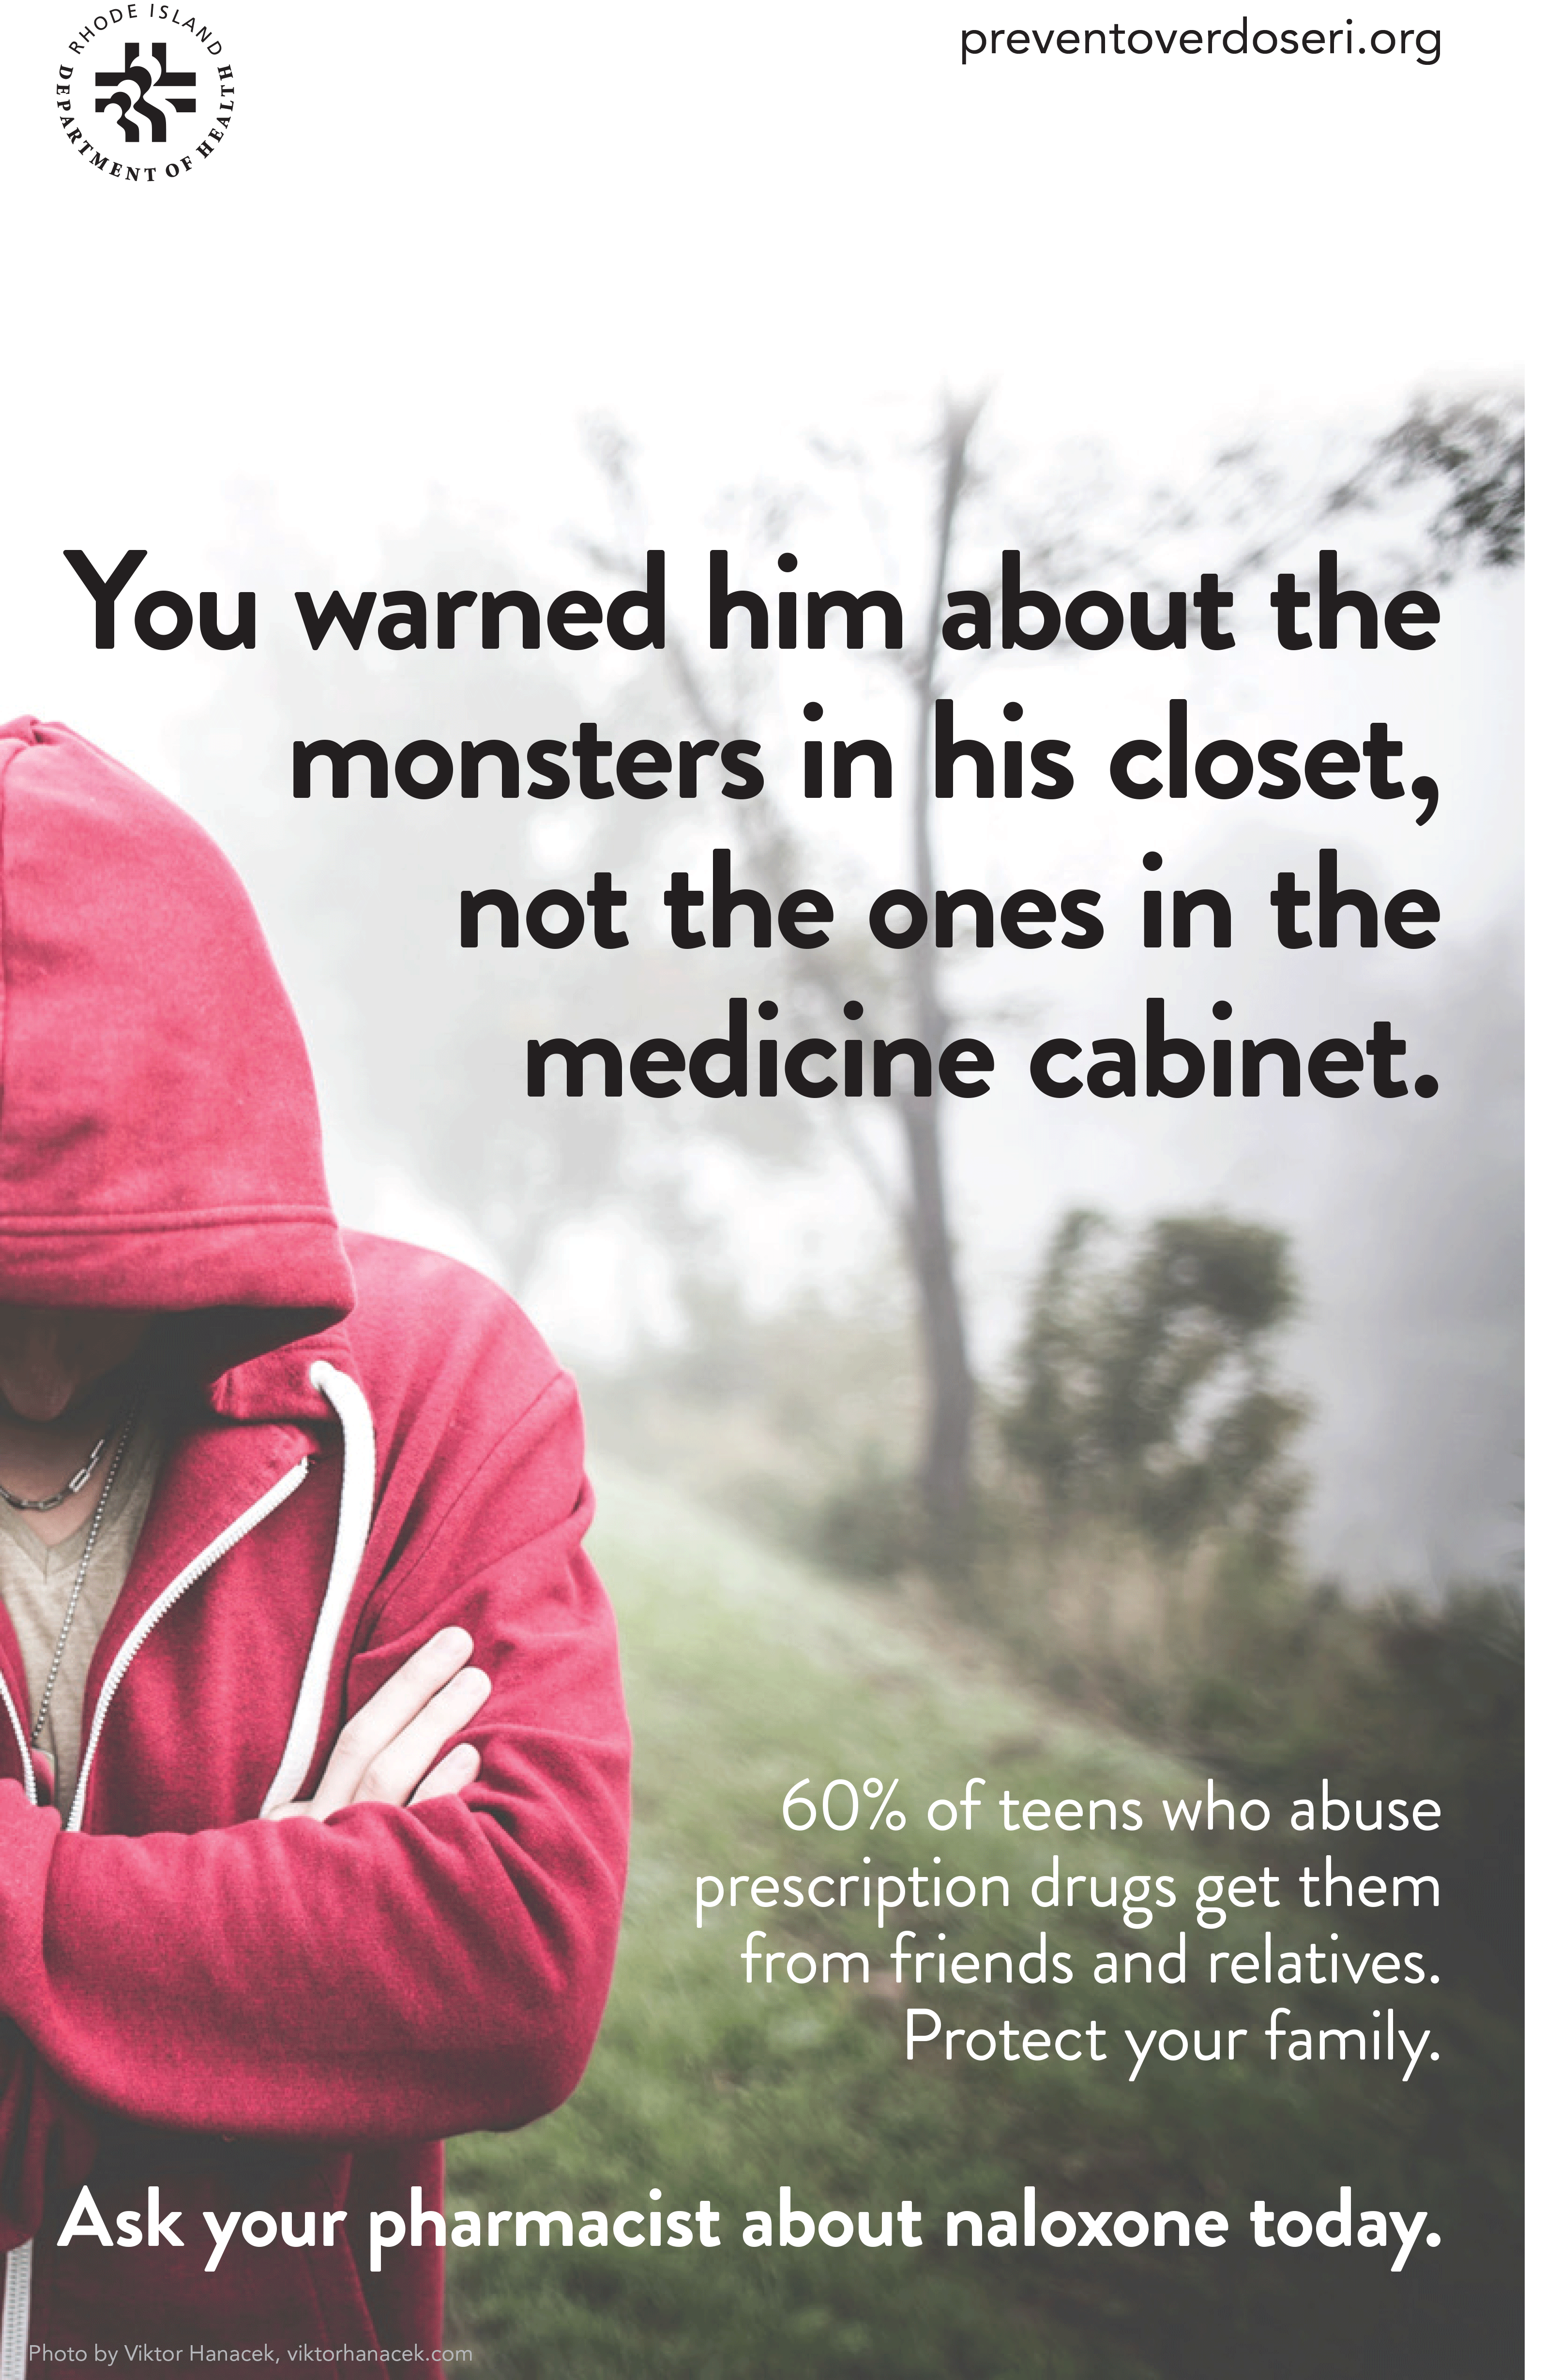 You warned him about the monsters in the closet, not the ones in the medicine cabinet.